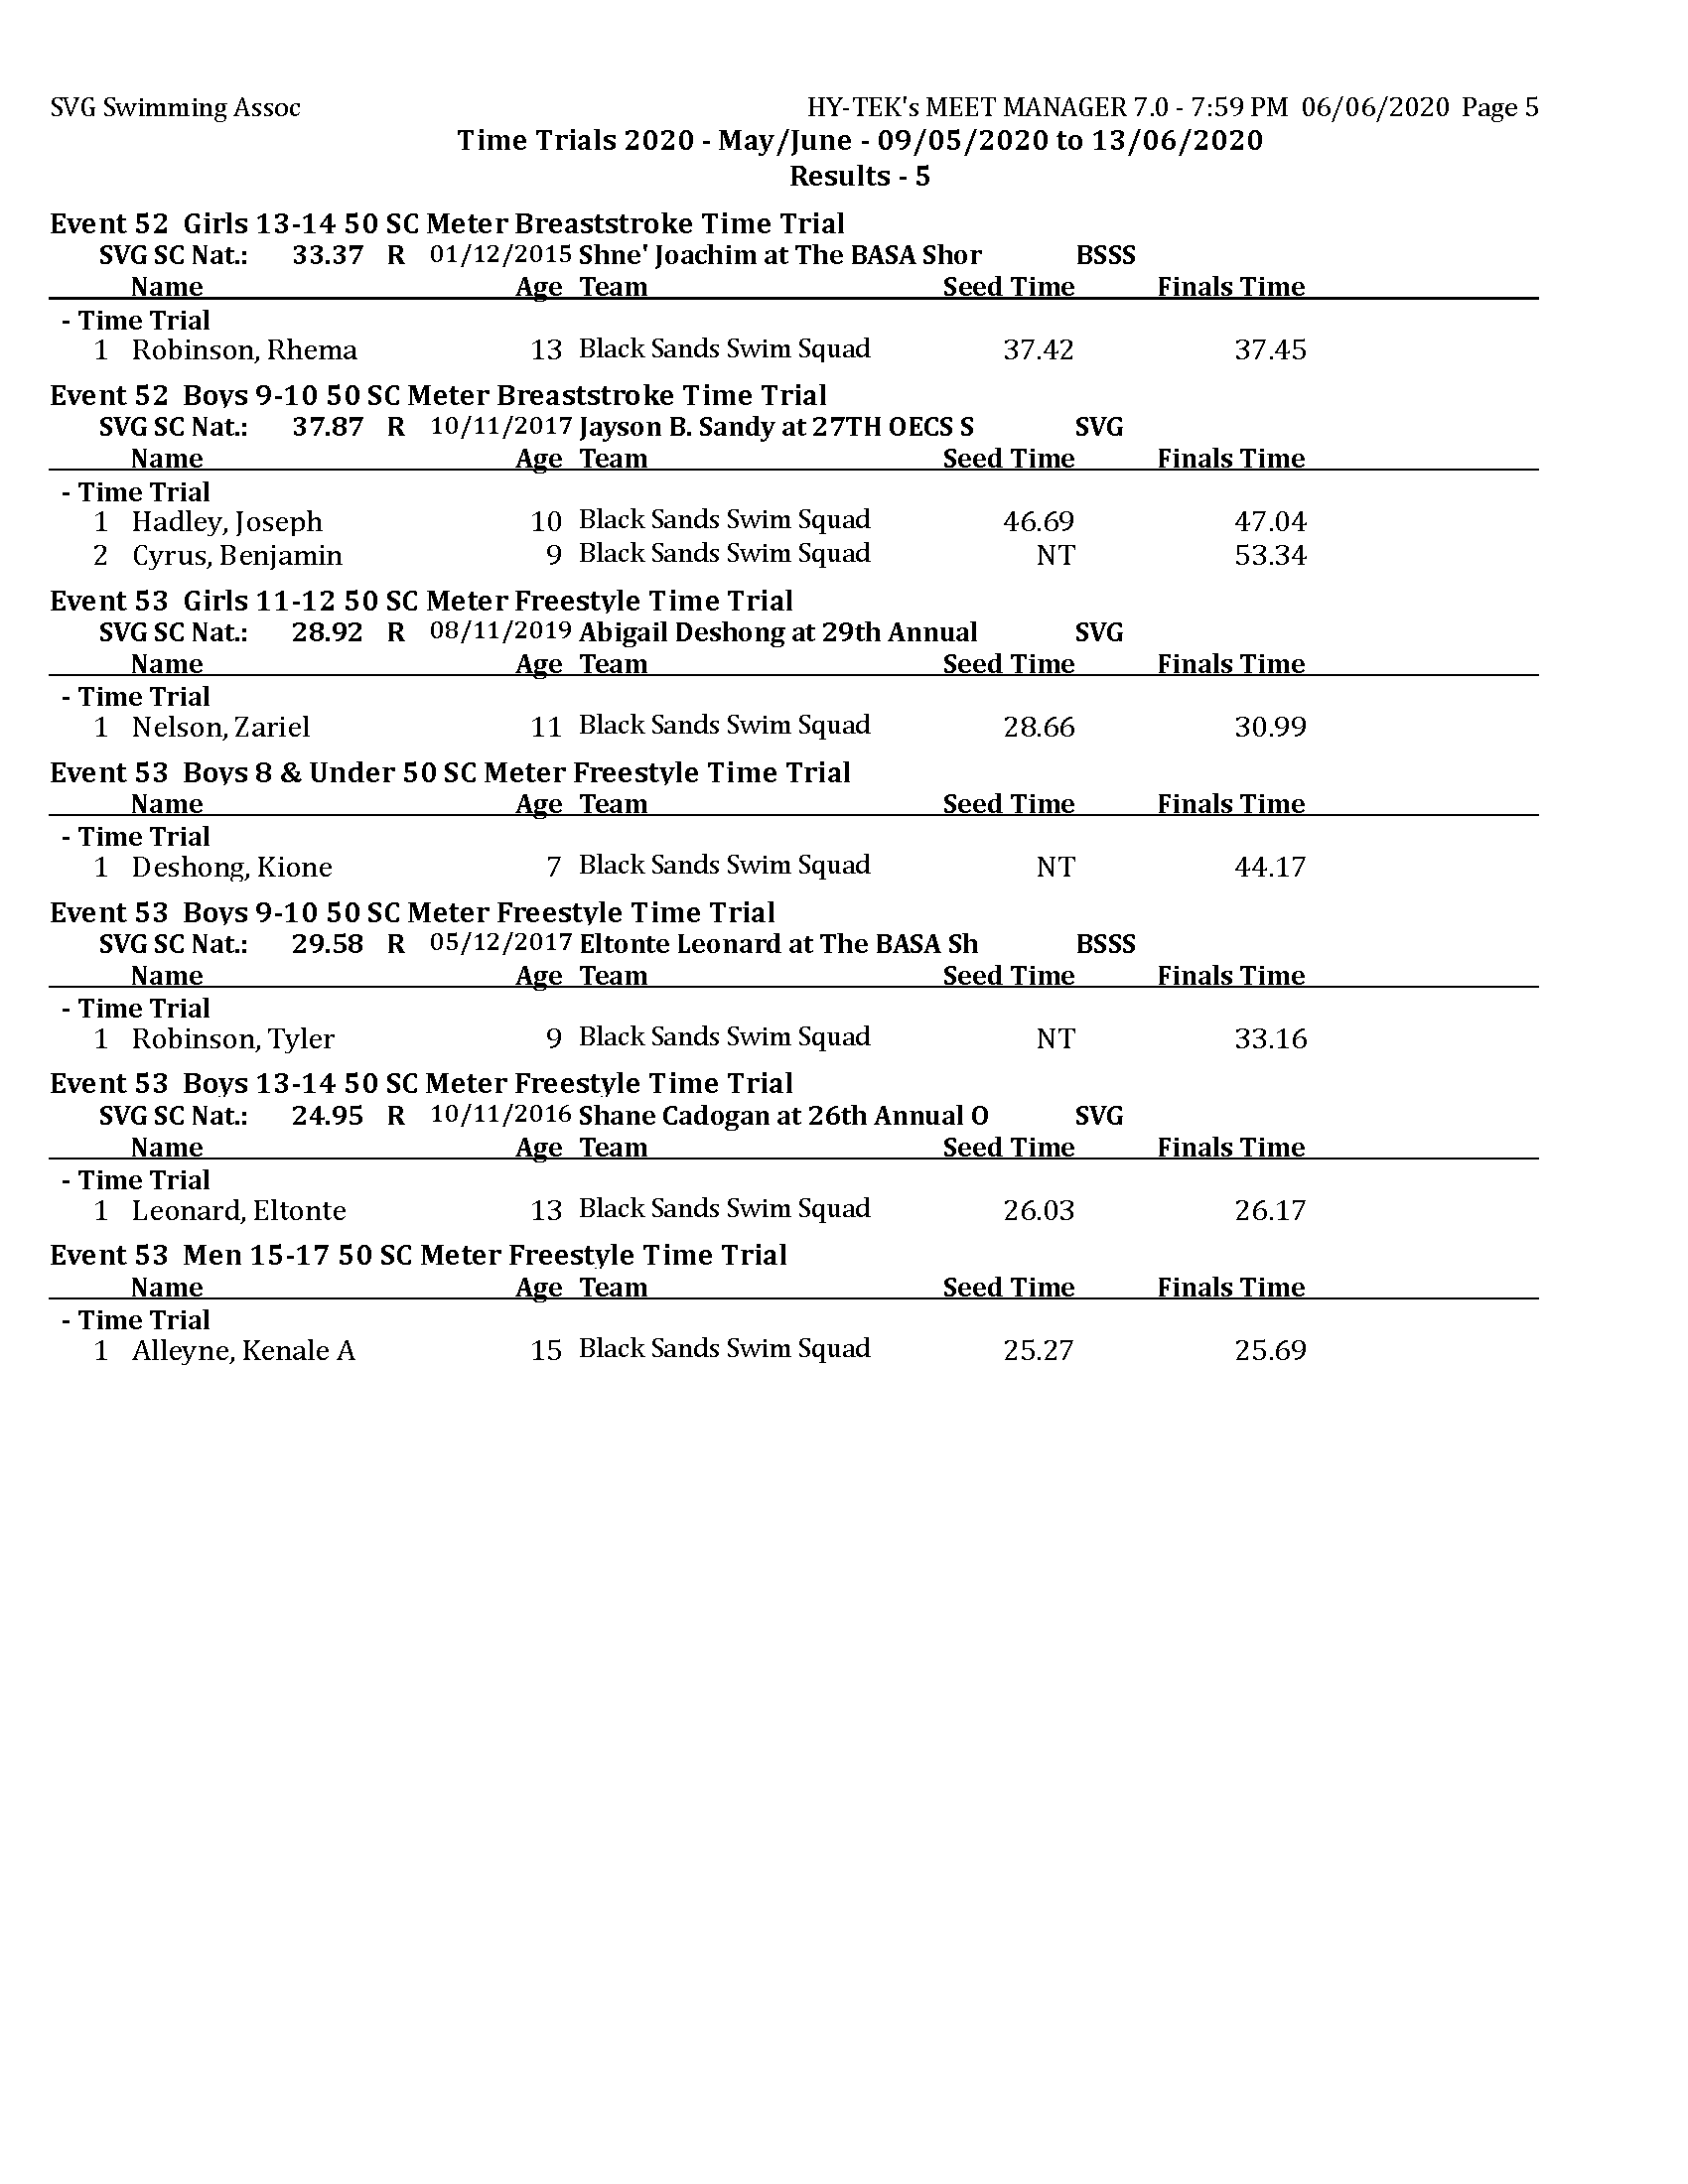 TT 2020 - May - Results day 5 MM_Page_5